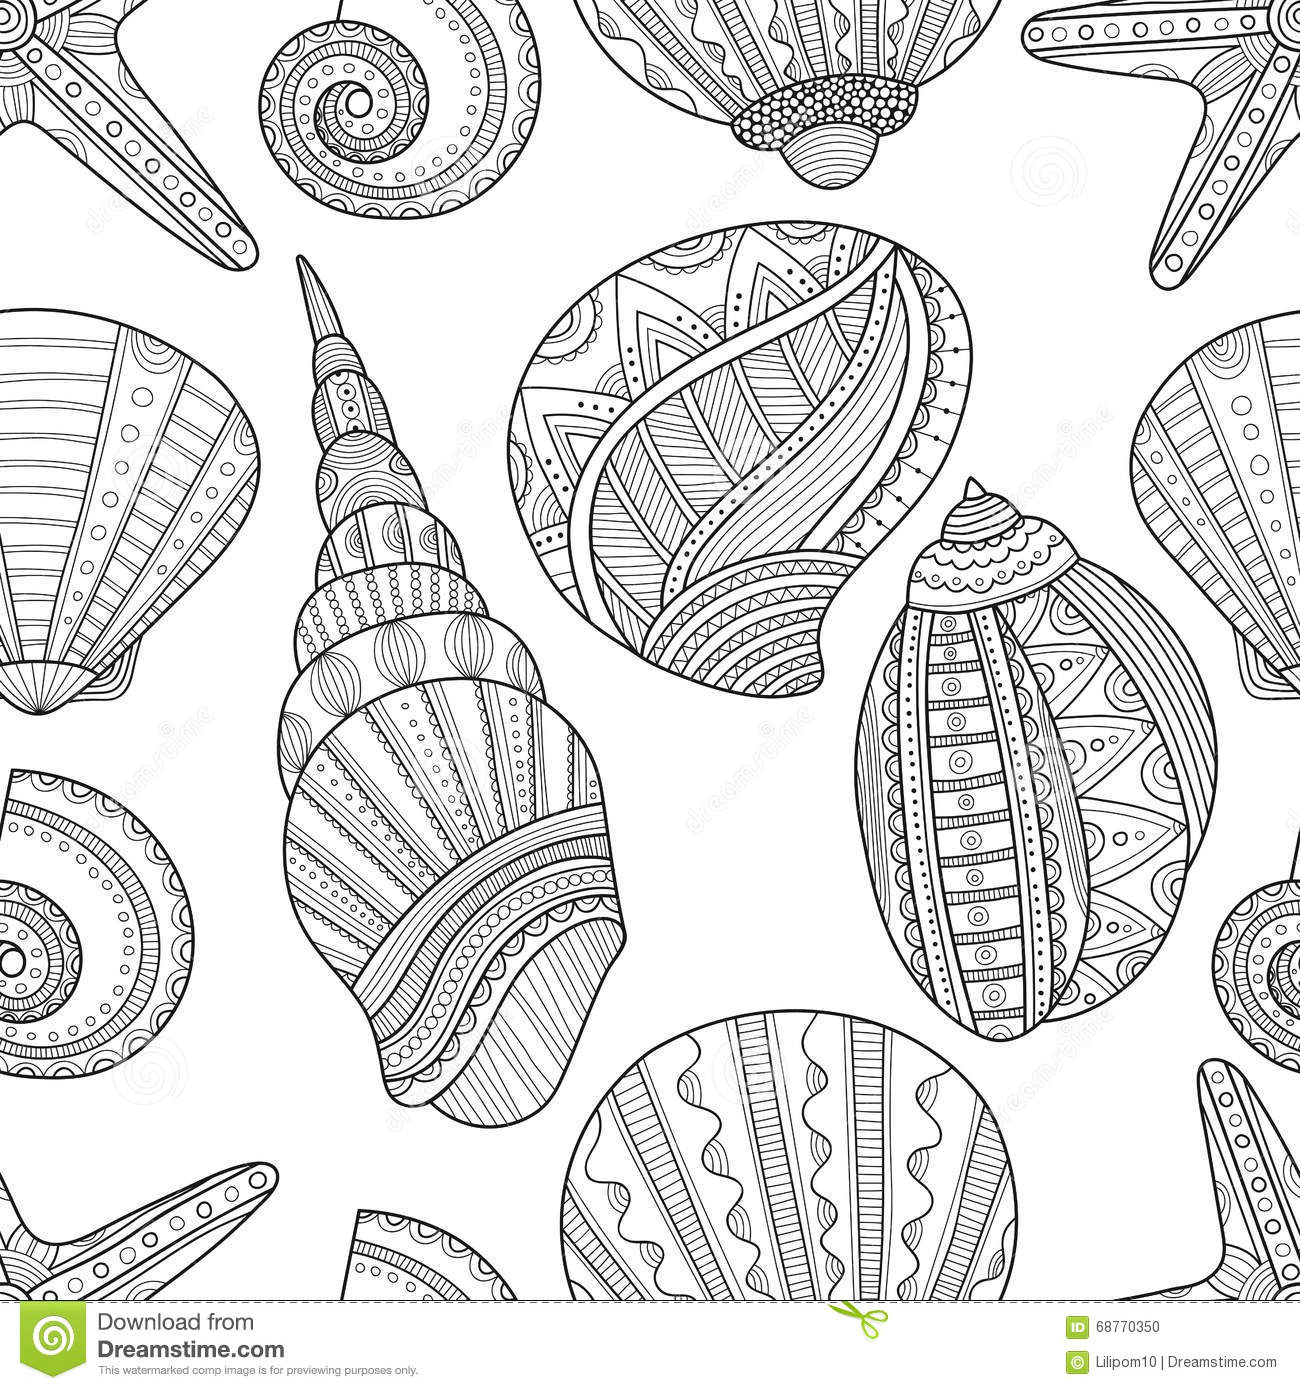 seamless black and white pattern of seashells to coloring book